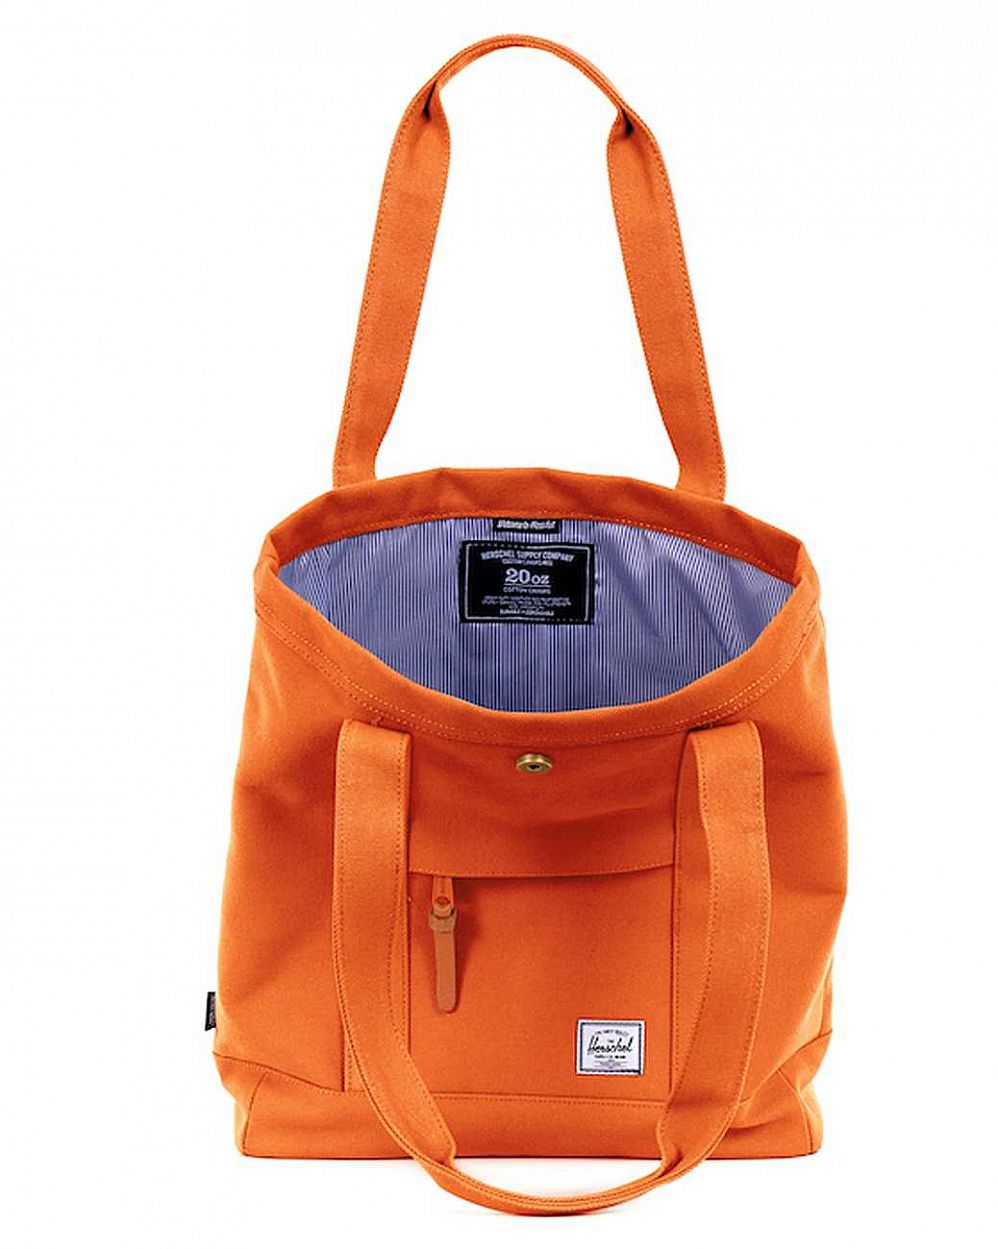 Сумка Herschel Market Canvas Burnt Orange купить в интернете